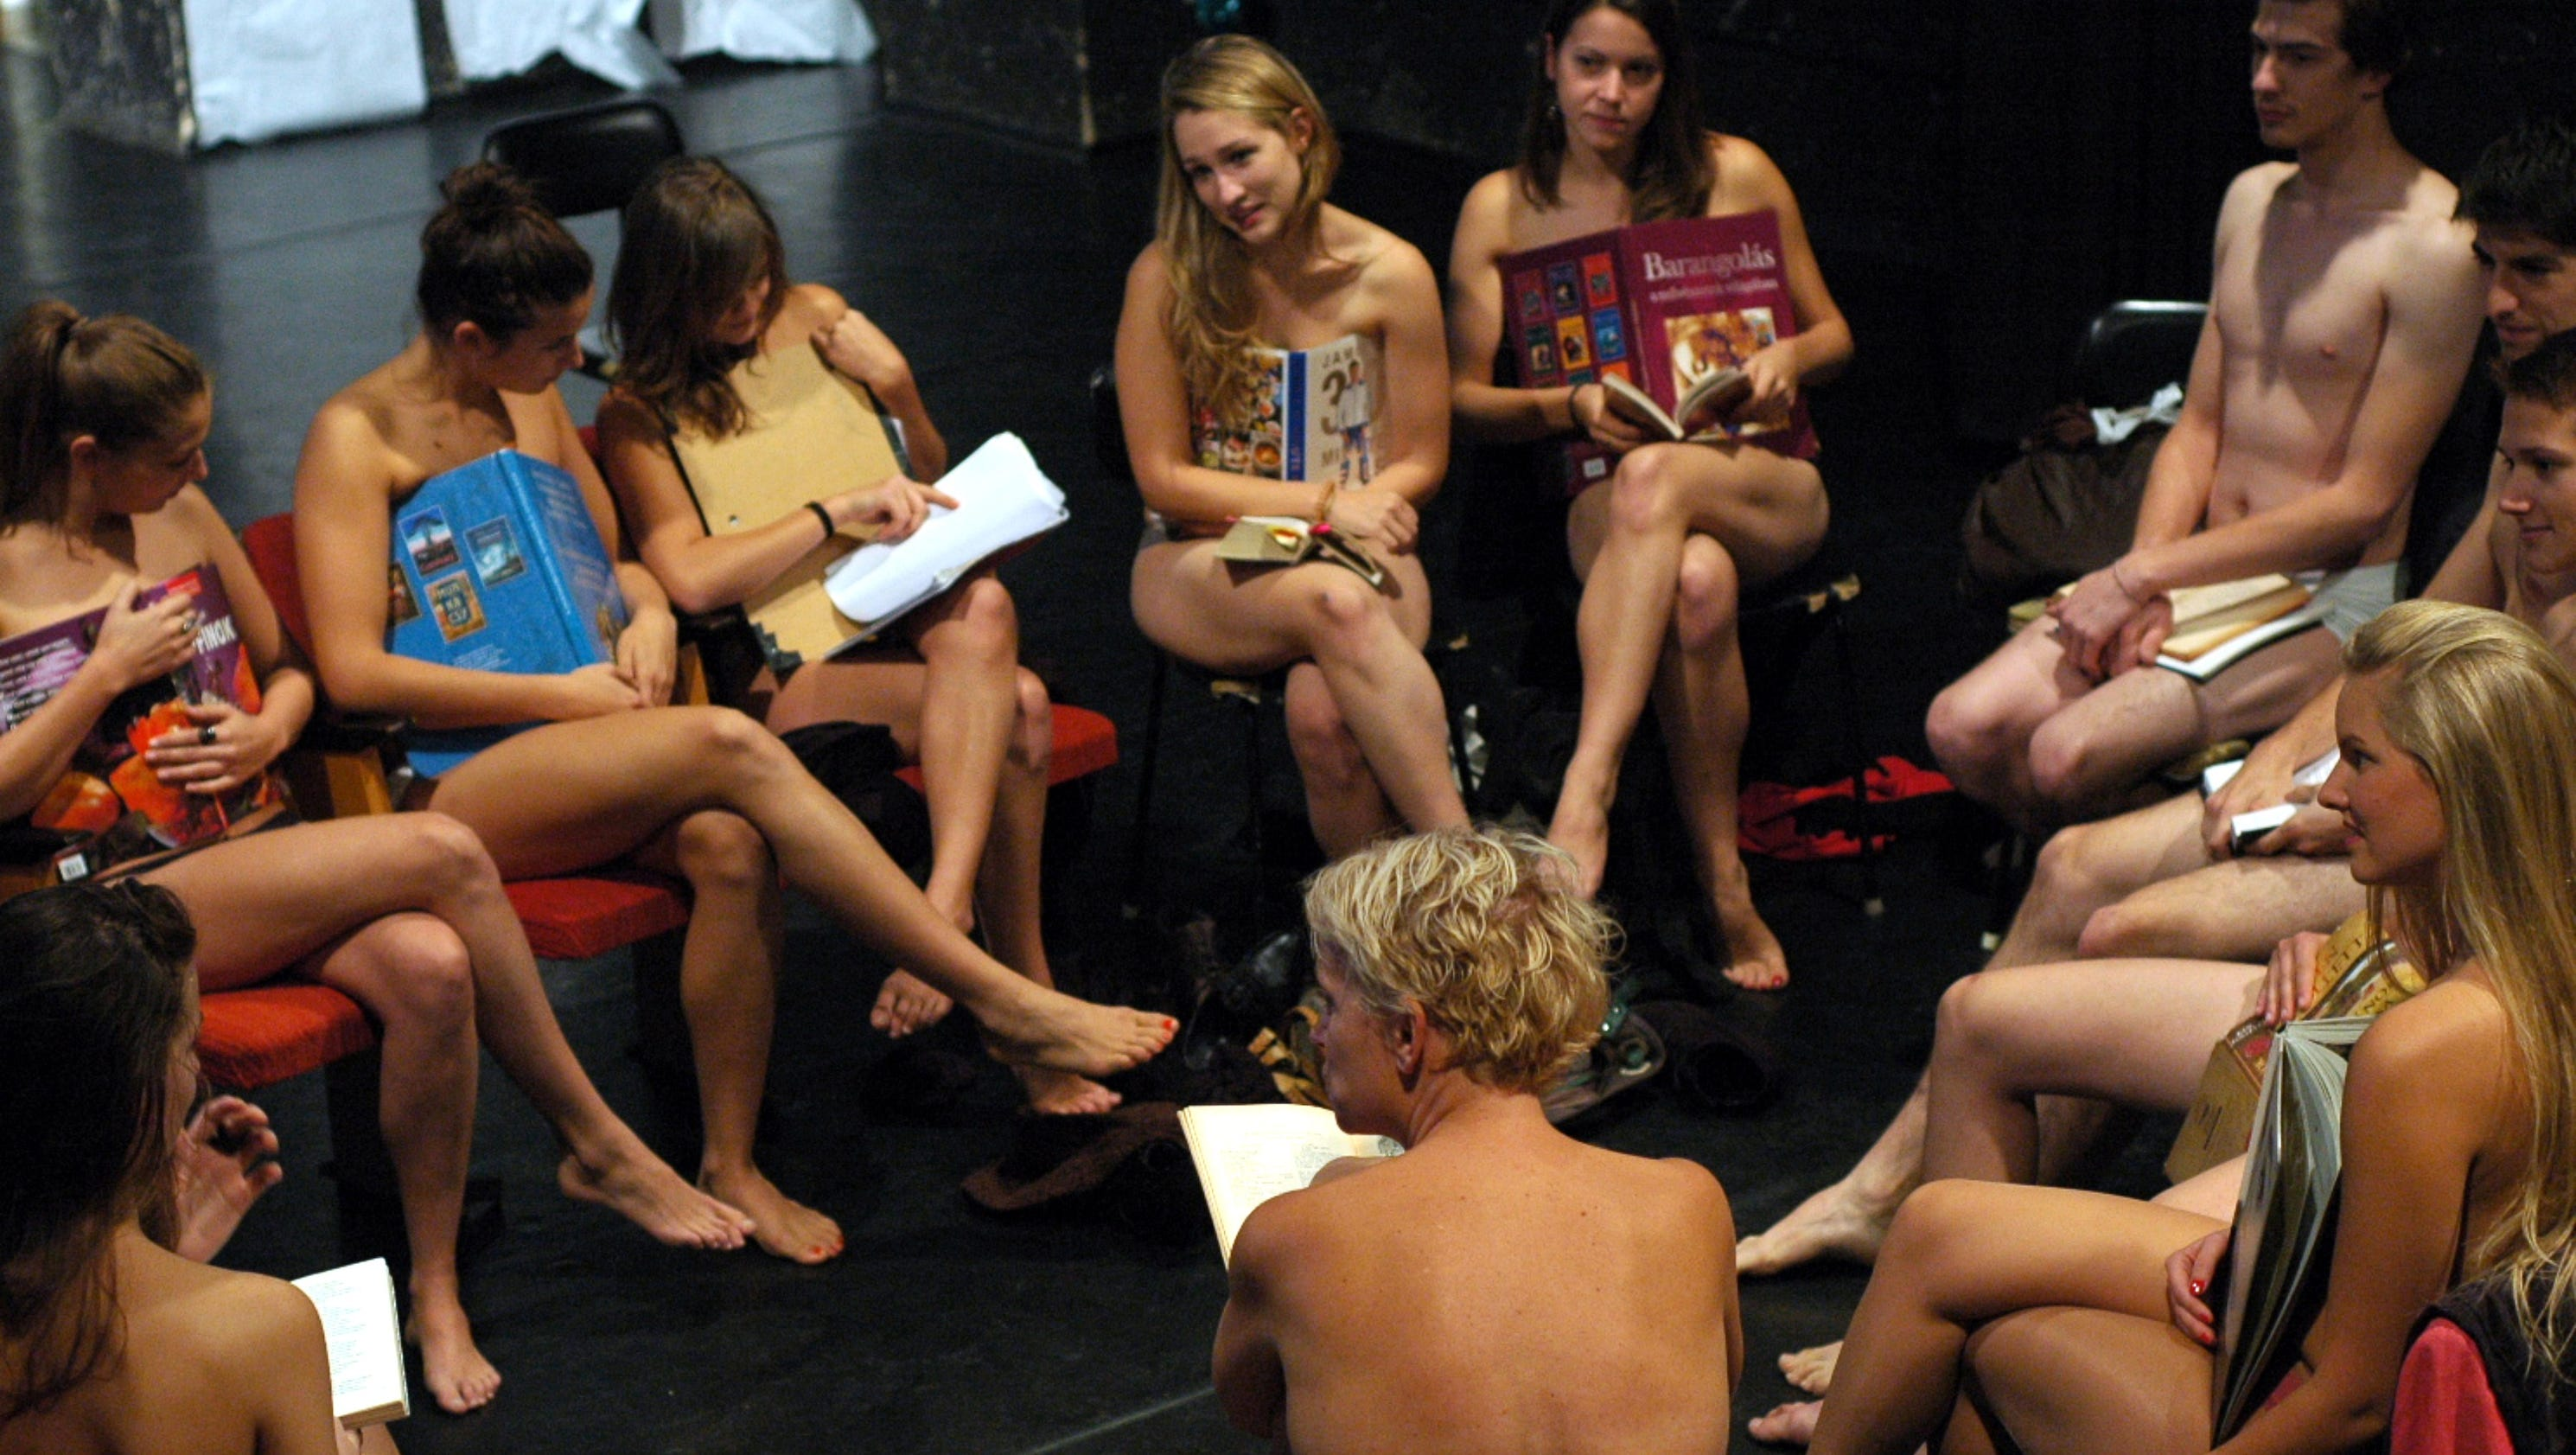 Naked Protest Held At Hungary University